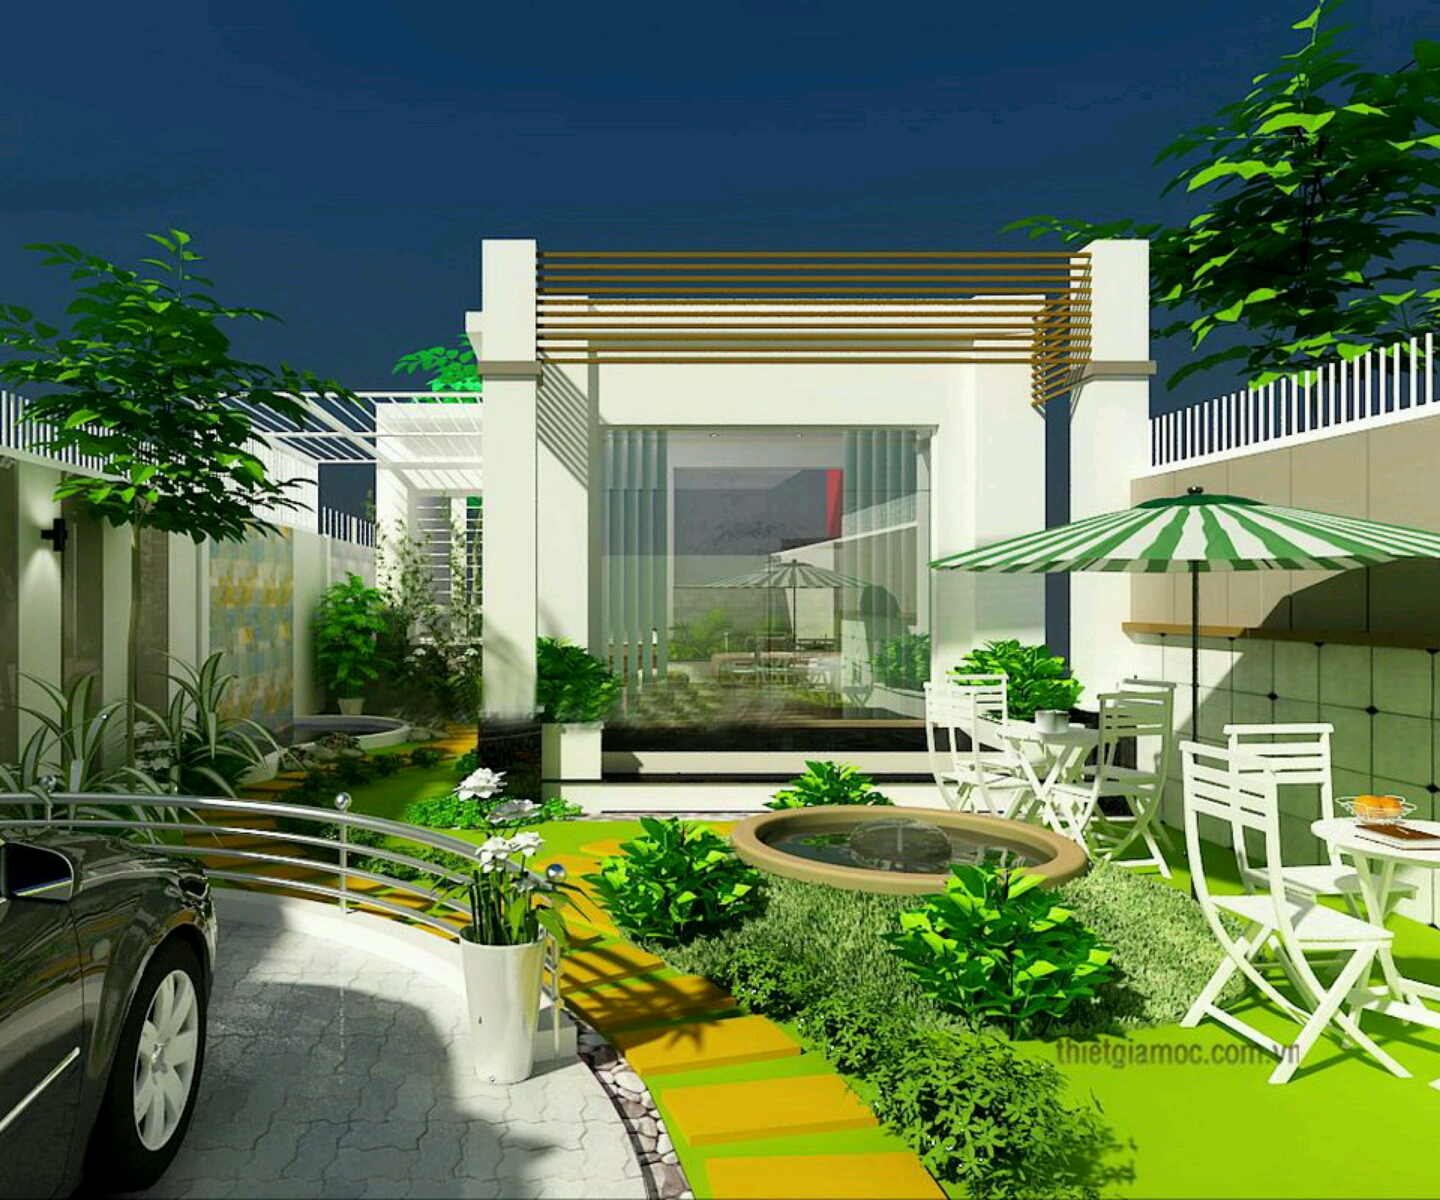 New home designs latest modern homes beautiful garden for Home garden design